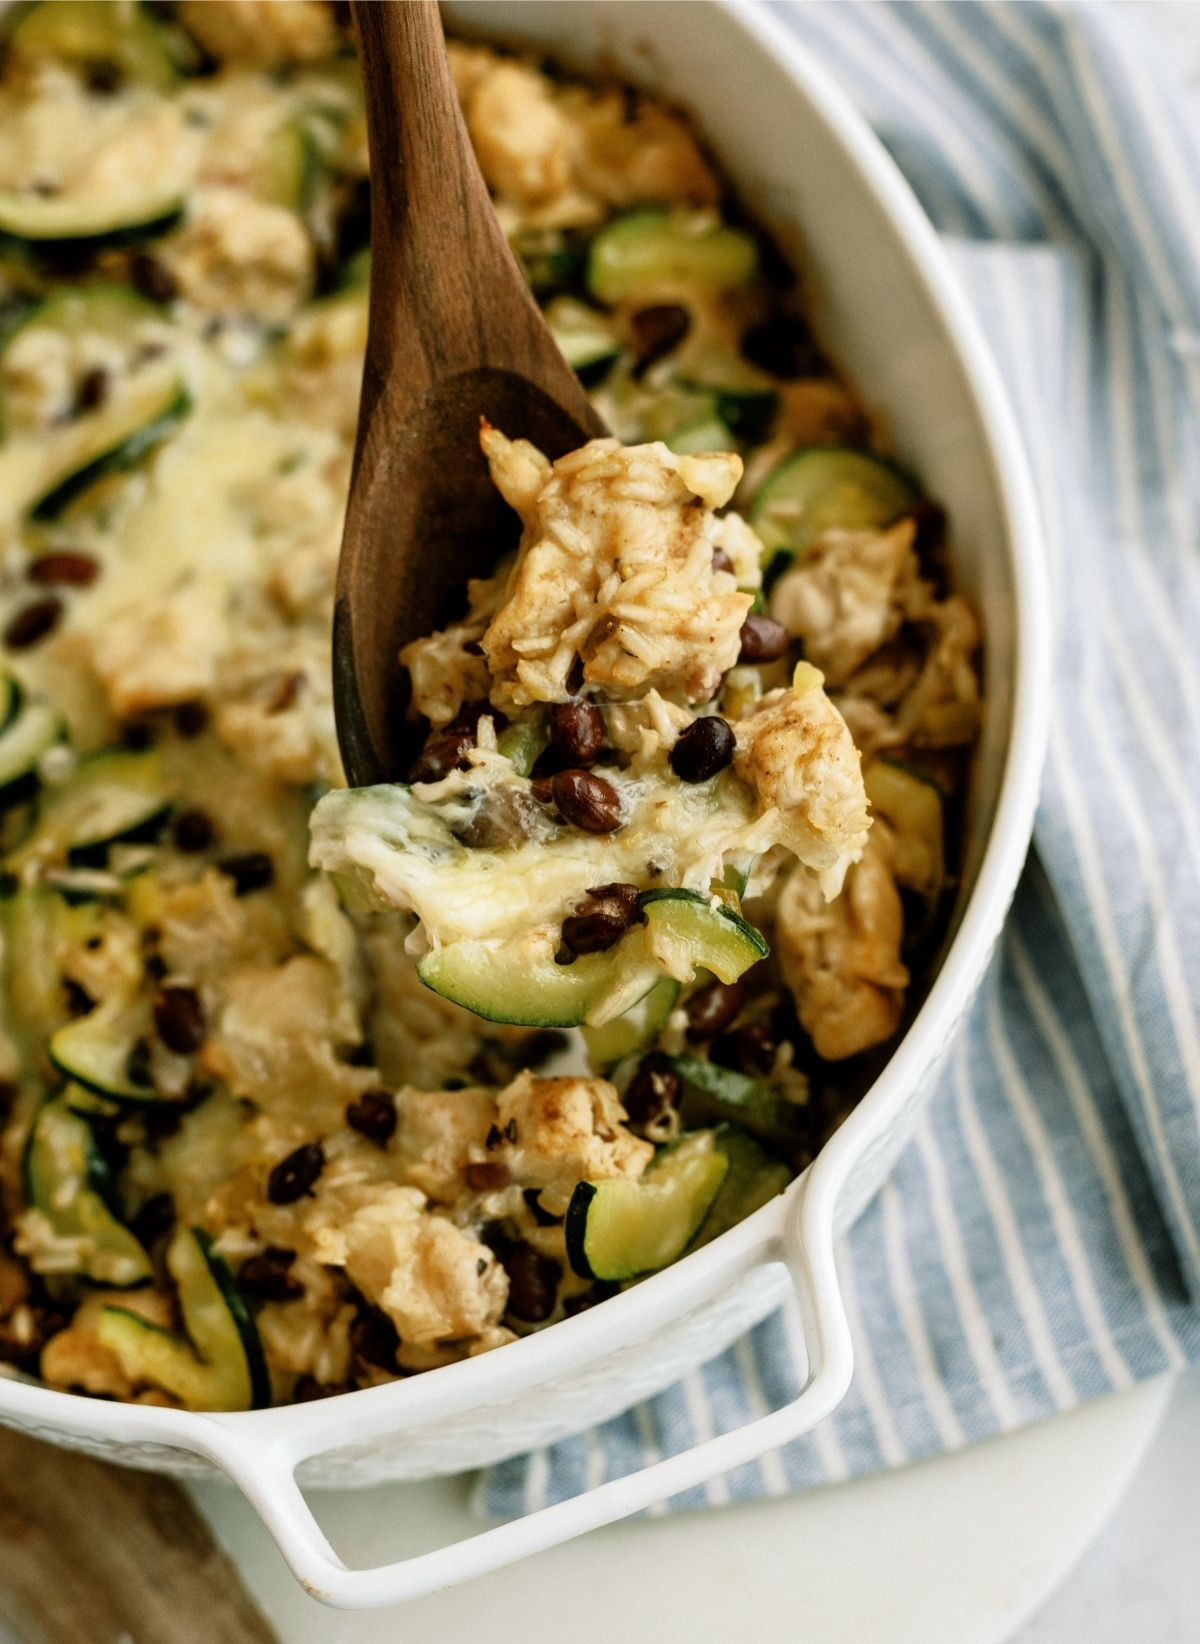 Chicken and Black Bean Casserole in a white casserole dish with a wooden spoon